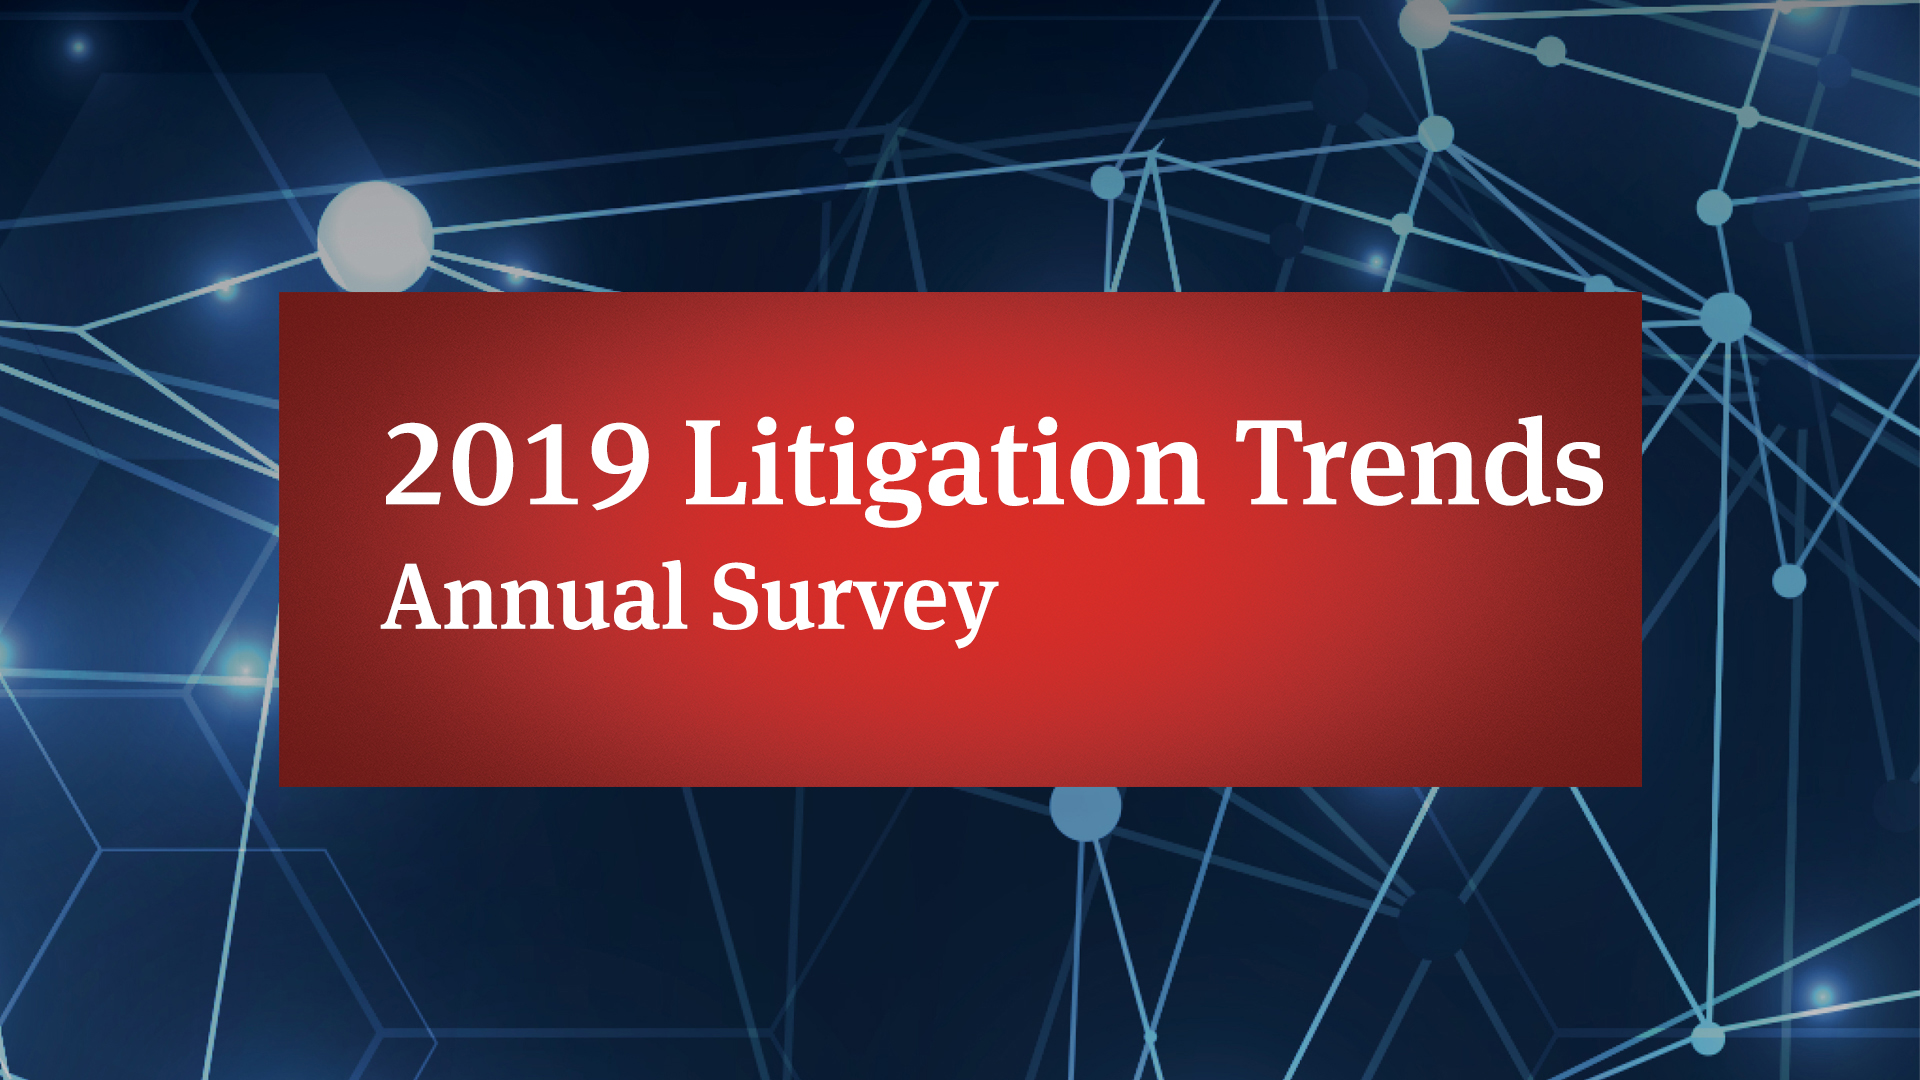 2019 Litigation Trends Annual Survey